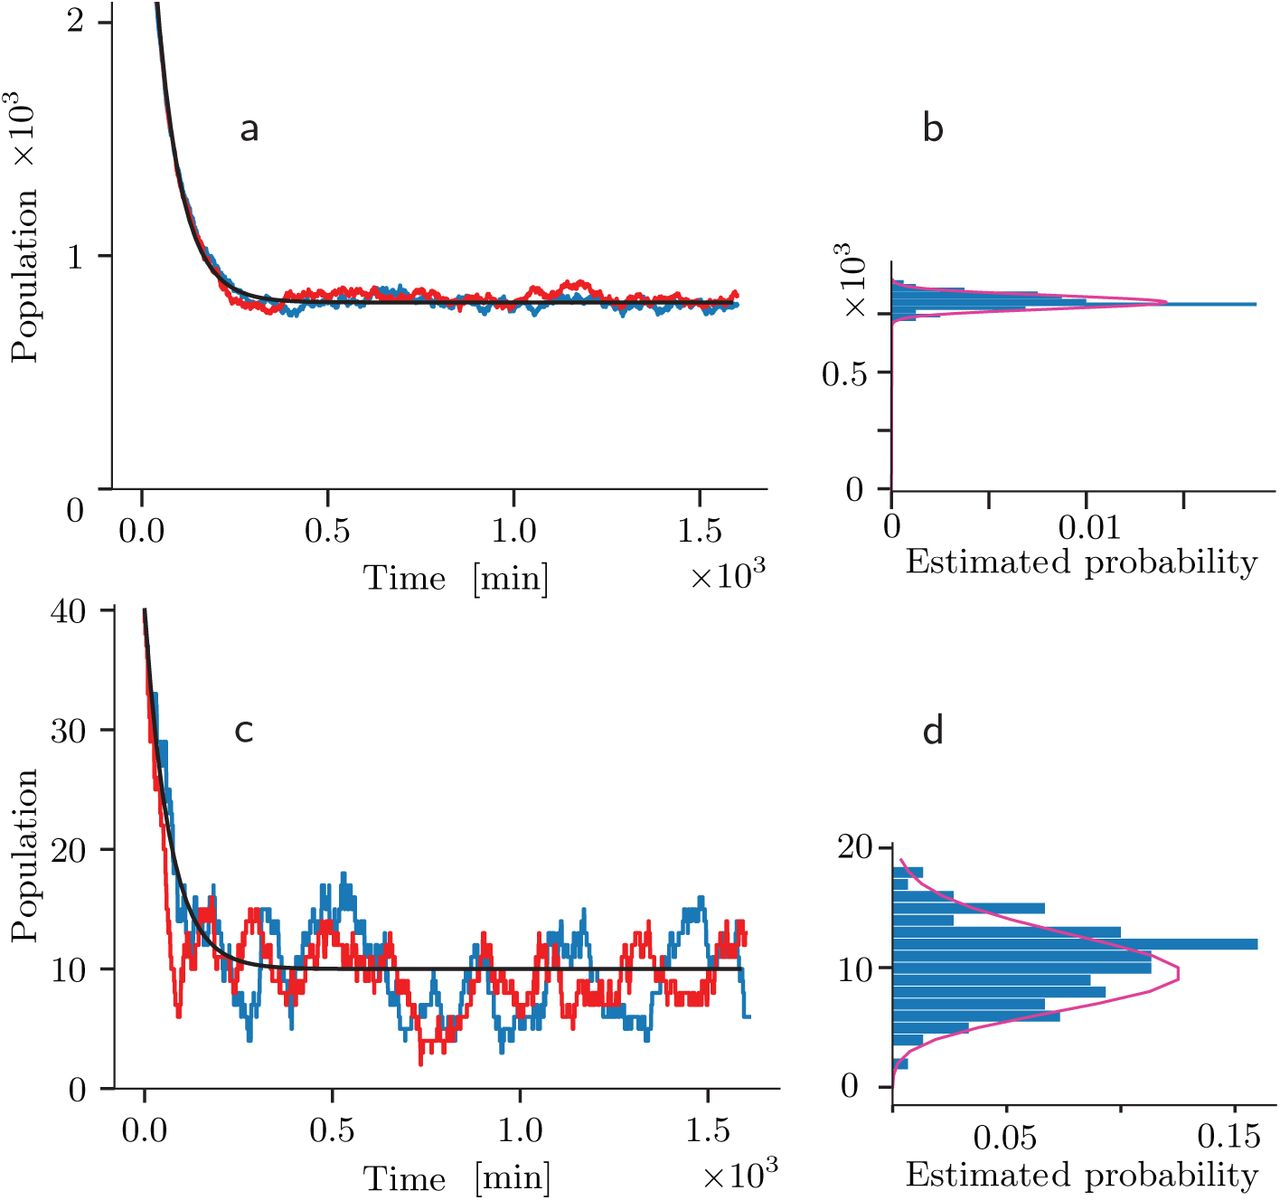 Stochastic Simulation to Visualize Gene Expression and Error